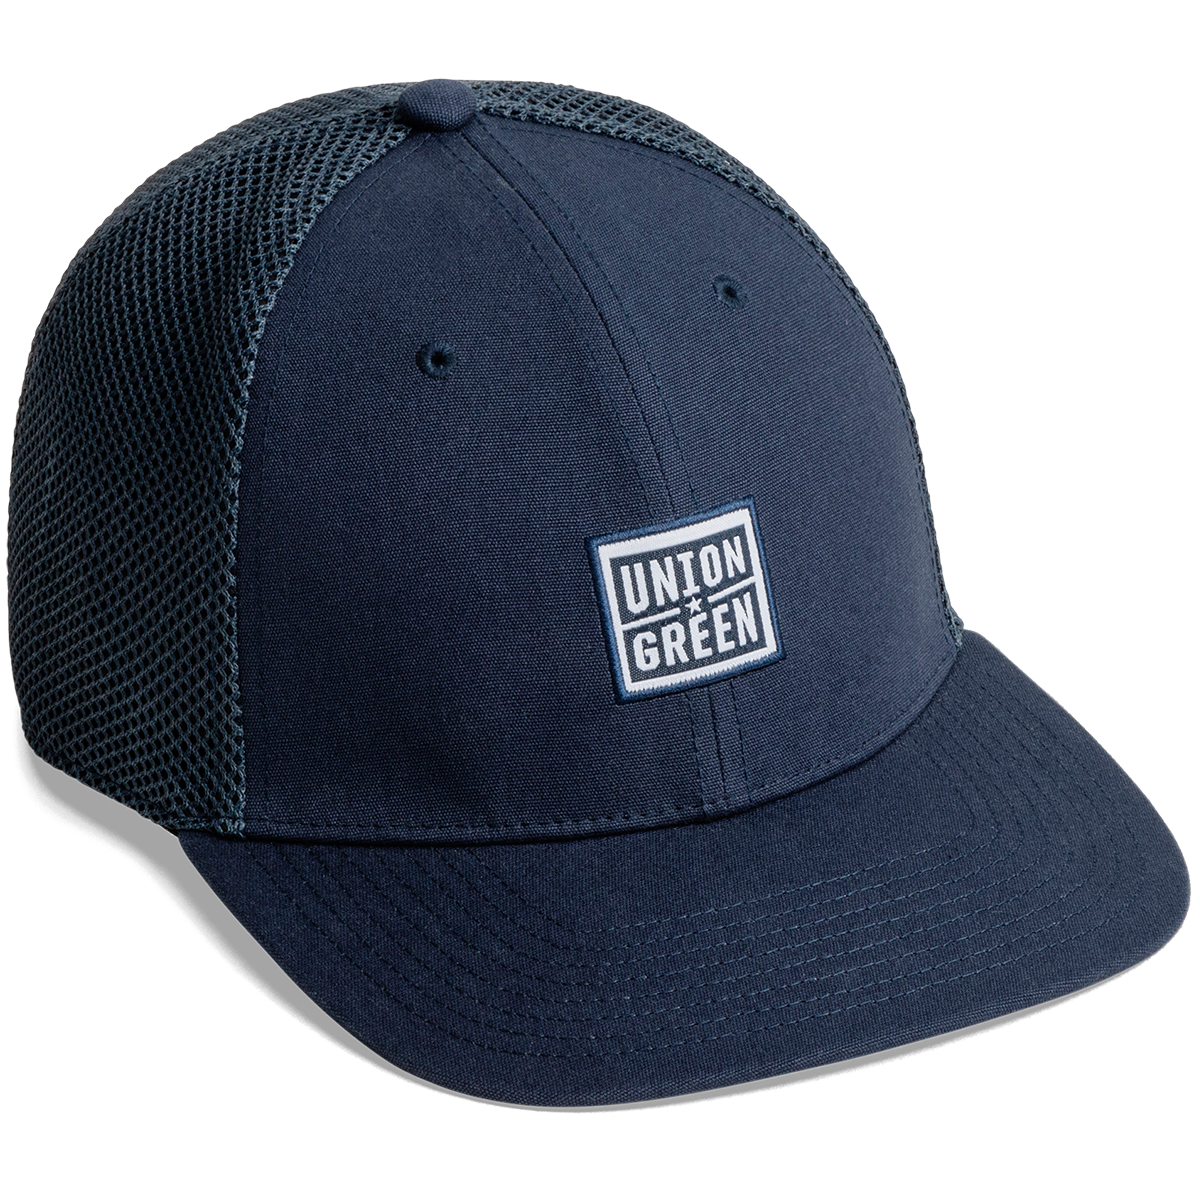 Union Green Wordmark Snapback Mesh Hat